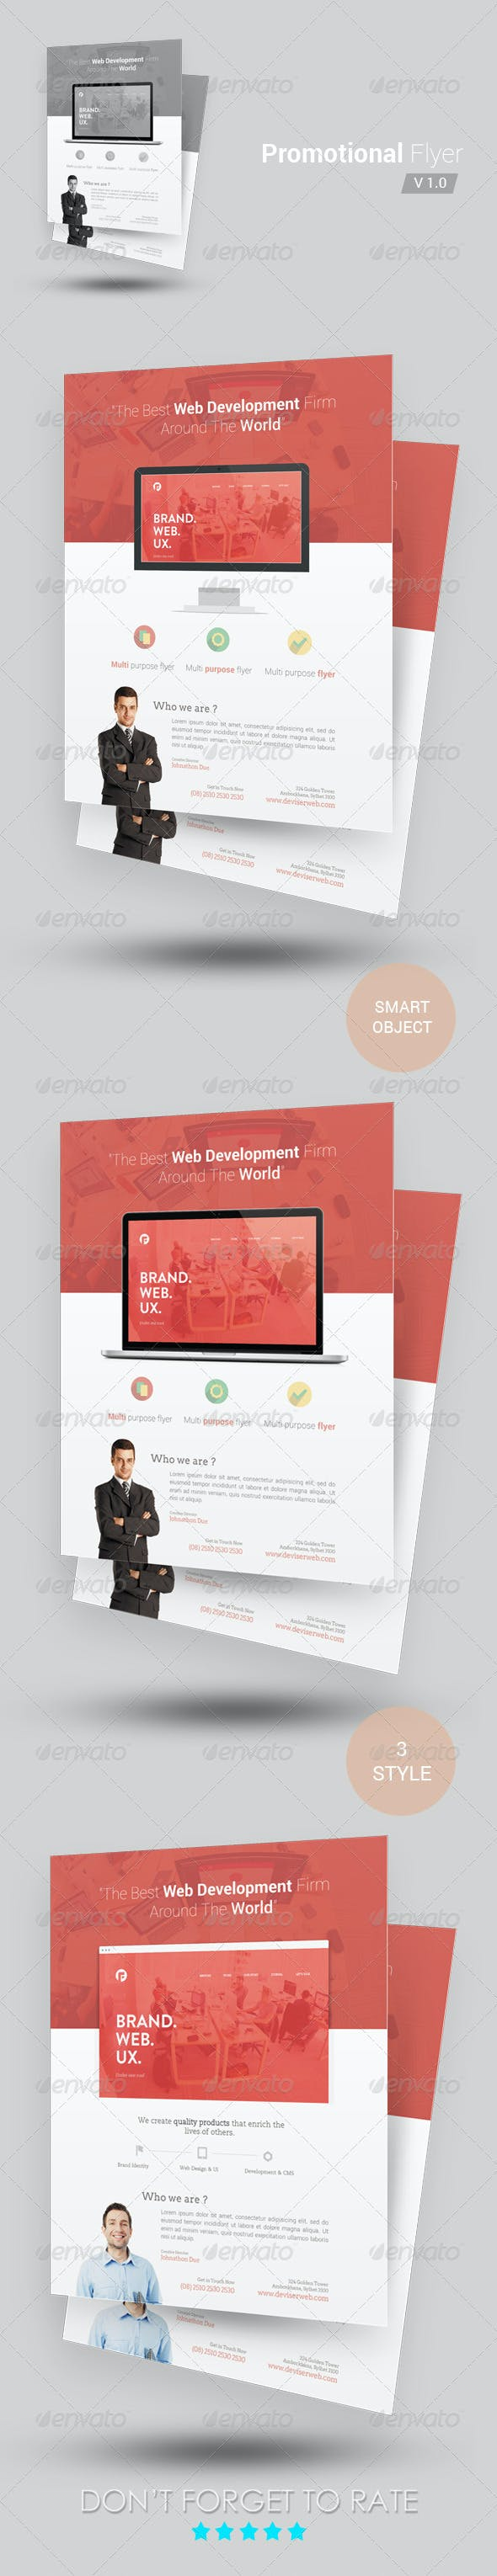 promotional flyer template by rtralrayhan graphicriver